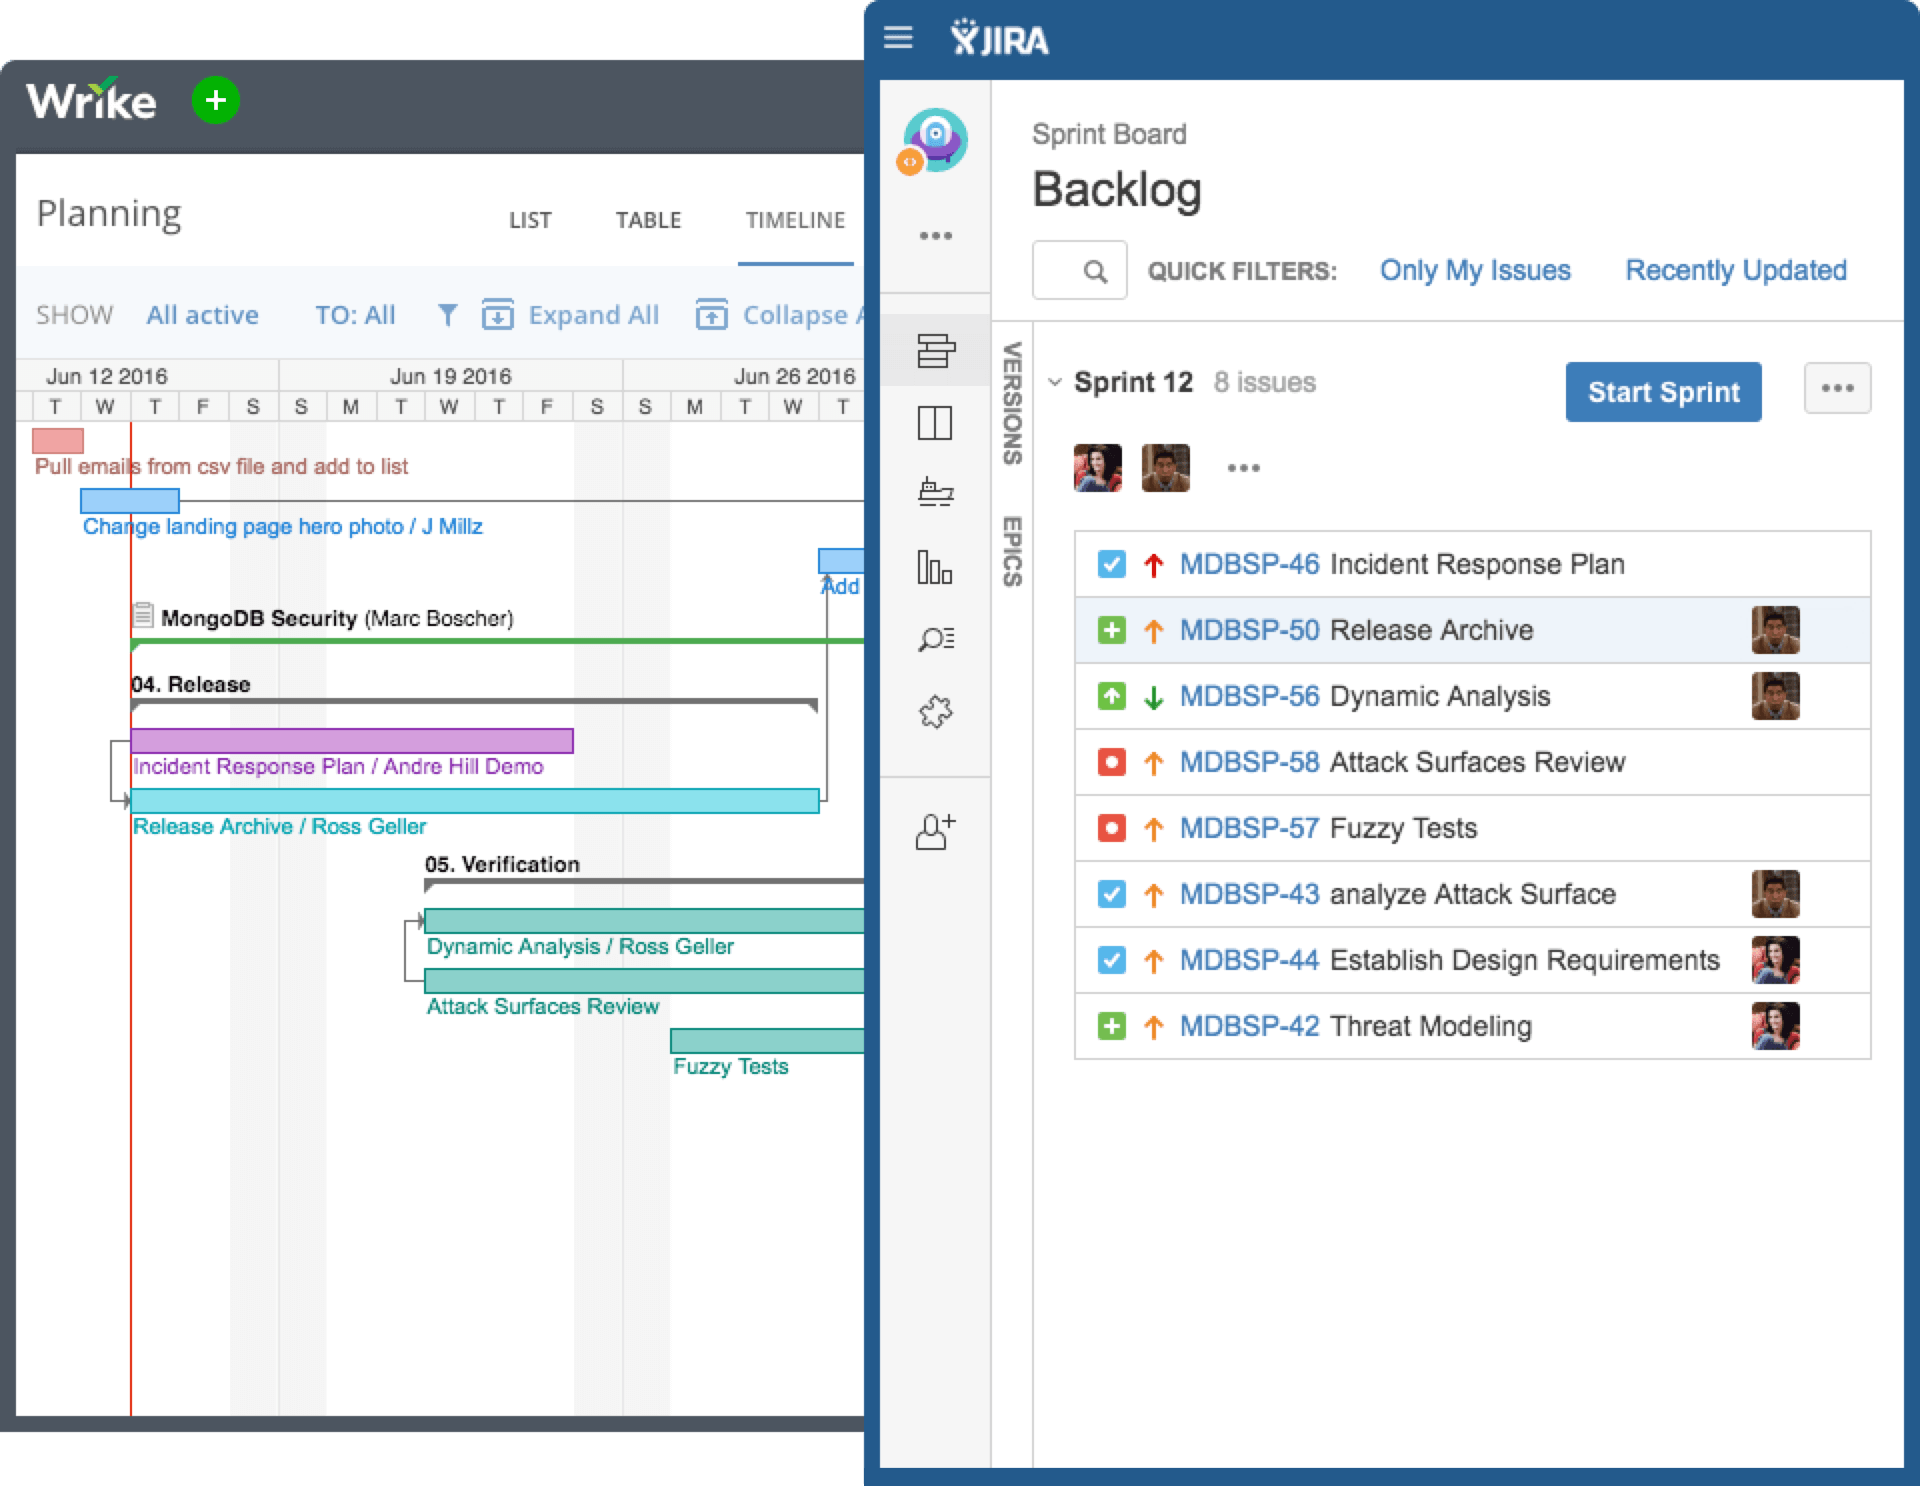 Plan projects that have a mix of JIRA and Wrike-only tasks